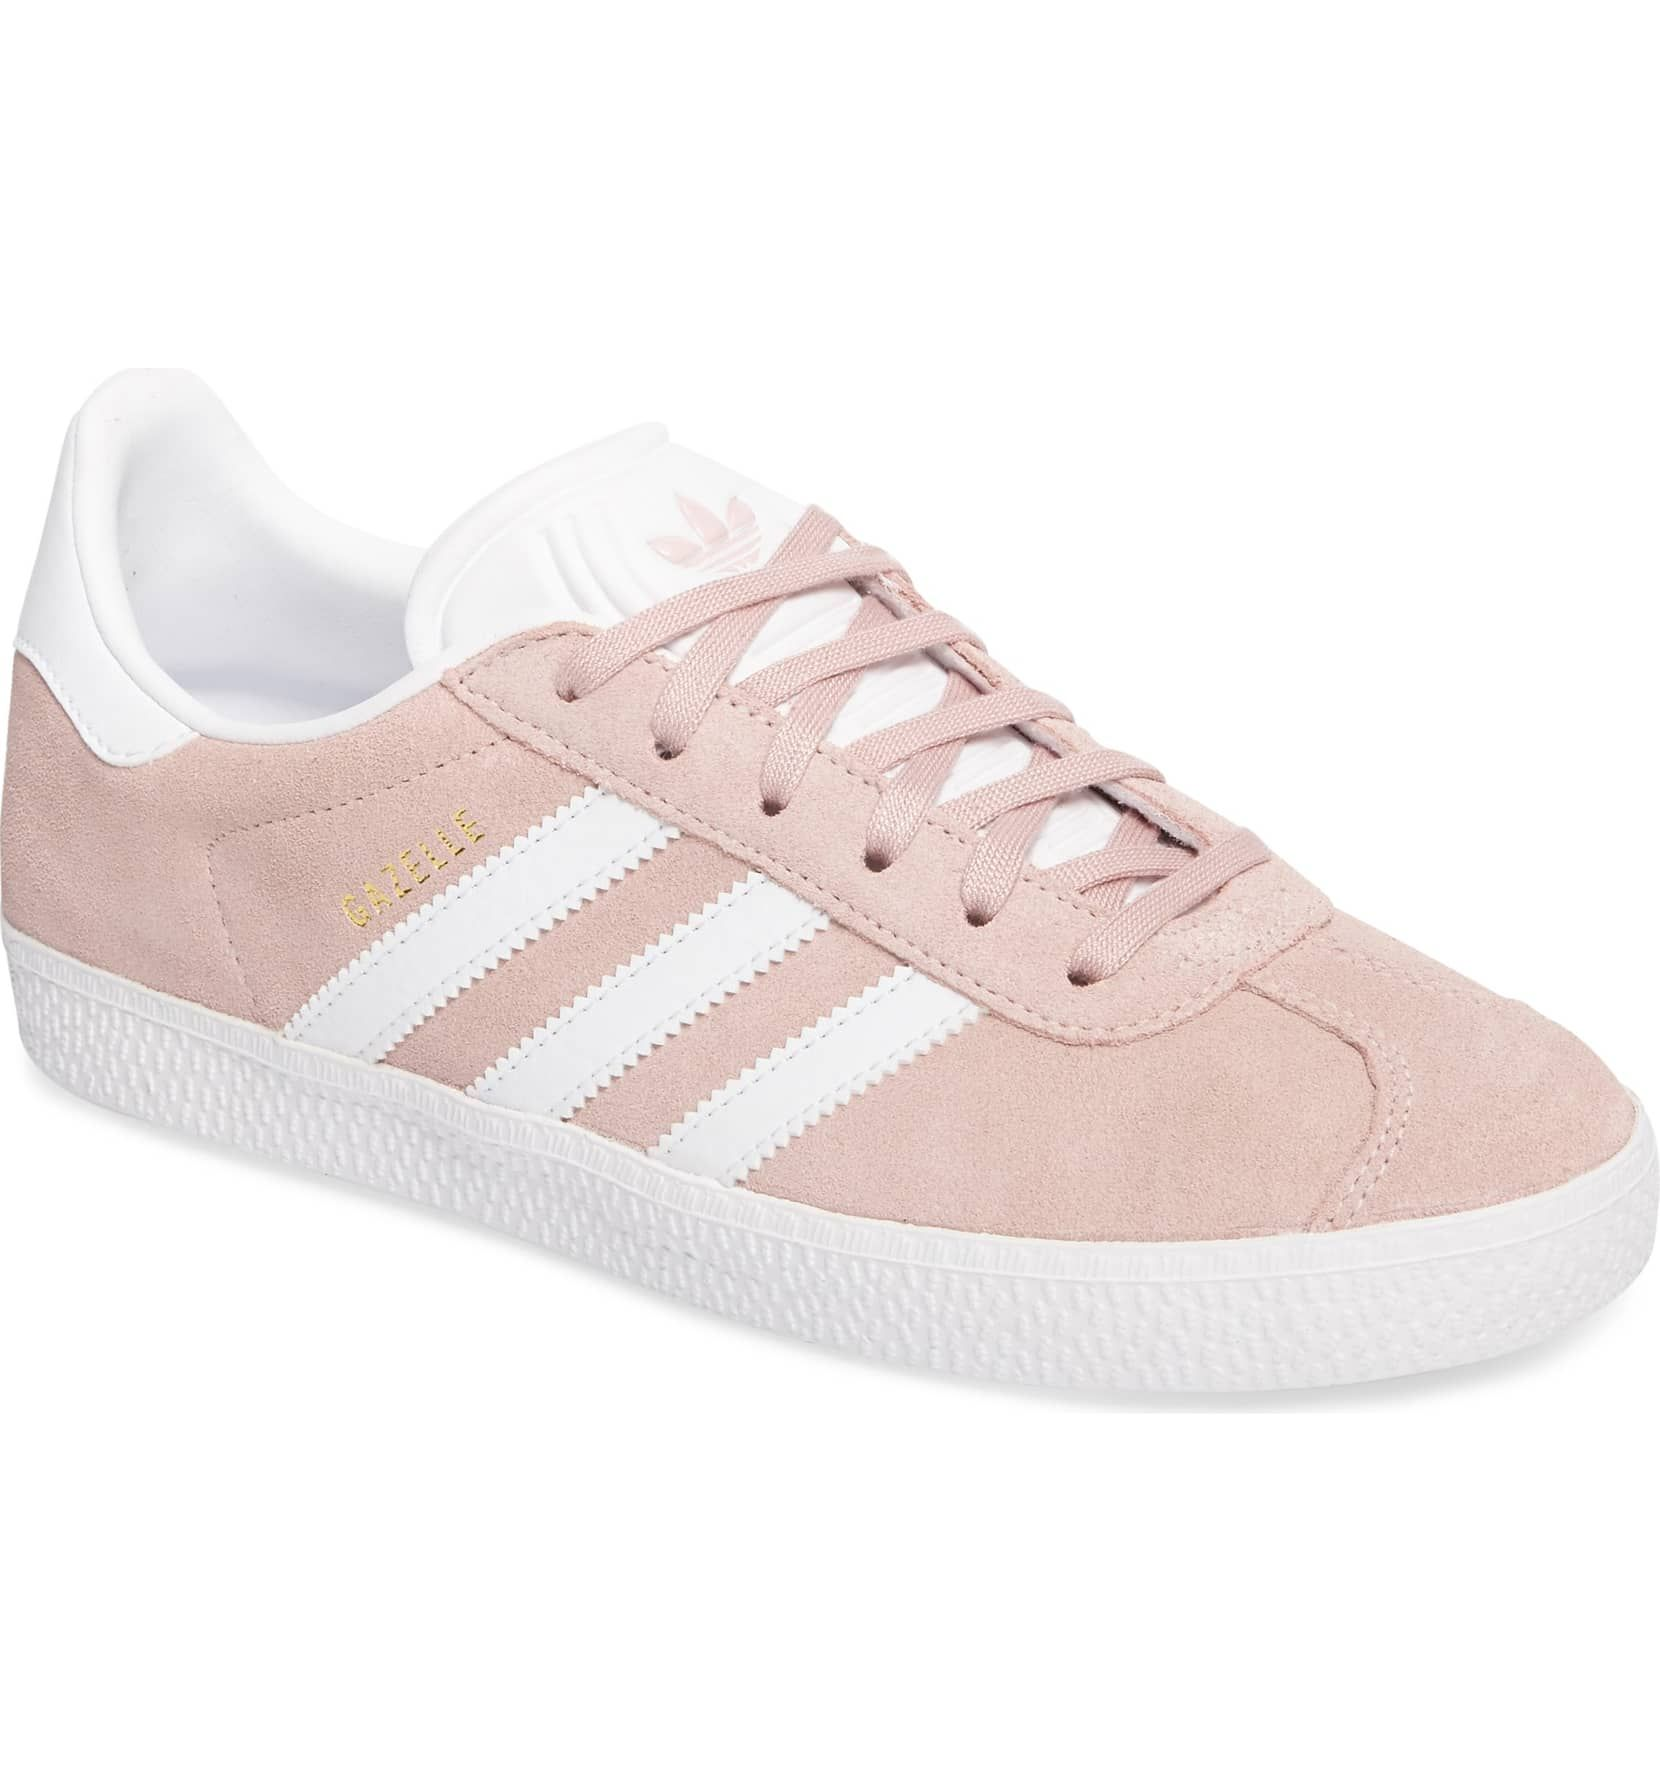 best loved eff0e d4470 Gazelle Sneaker, Main, color, Icy Pink White Gold